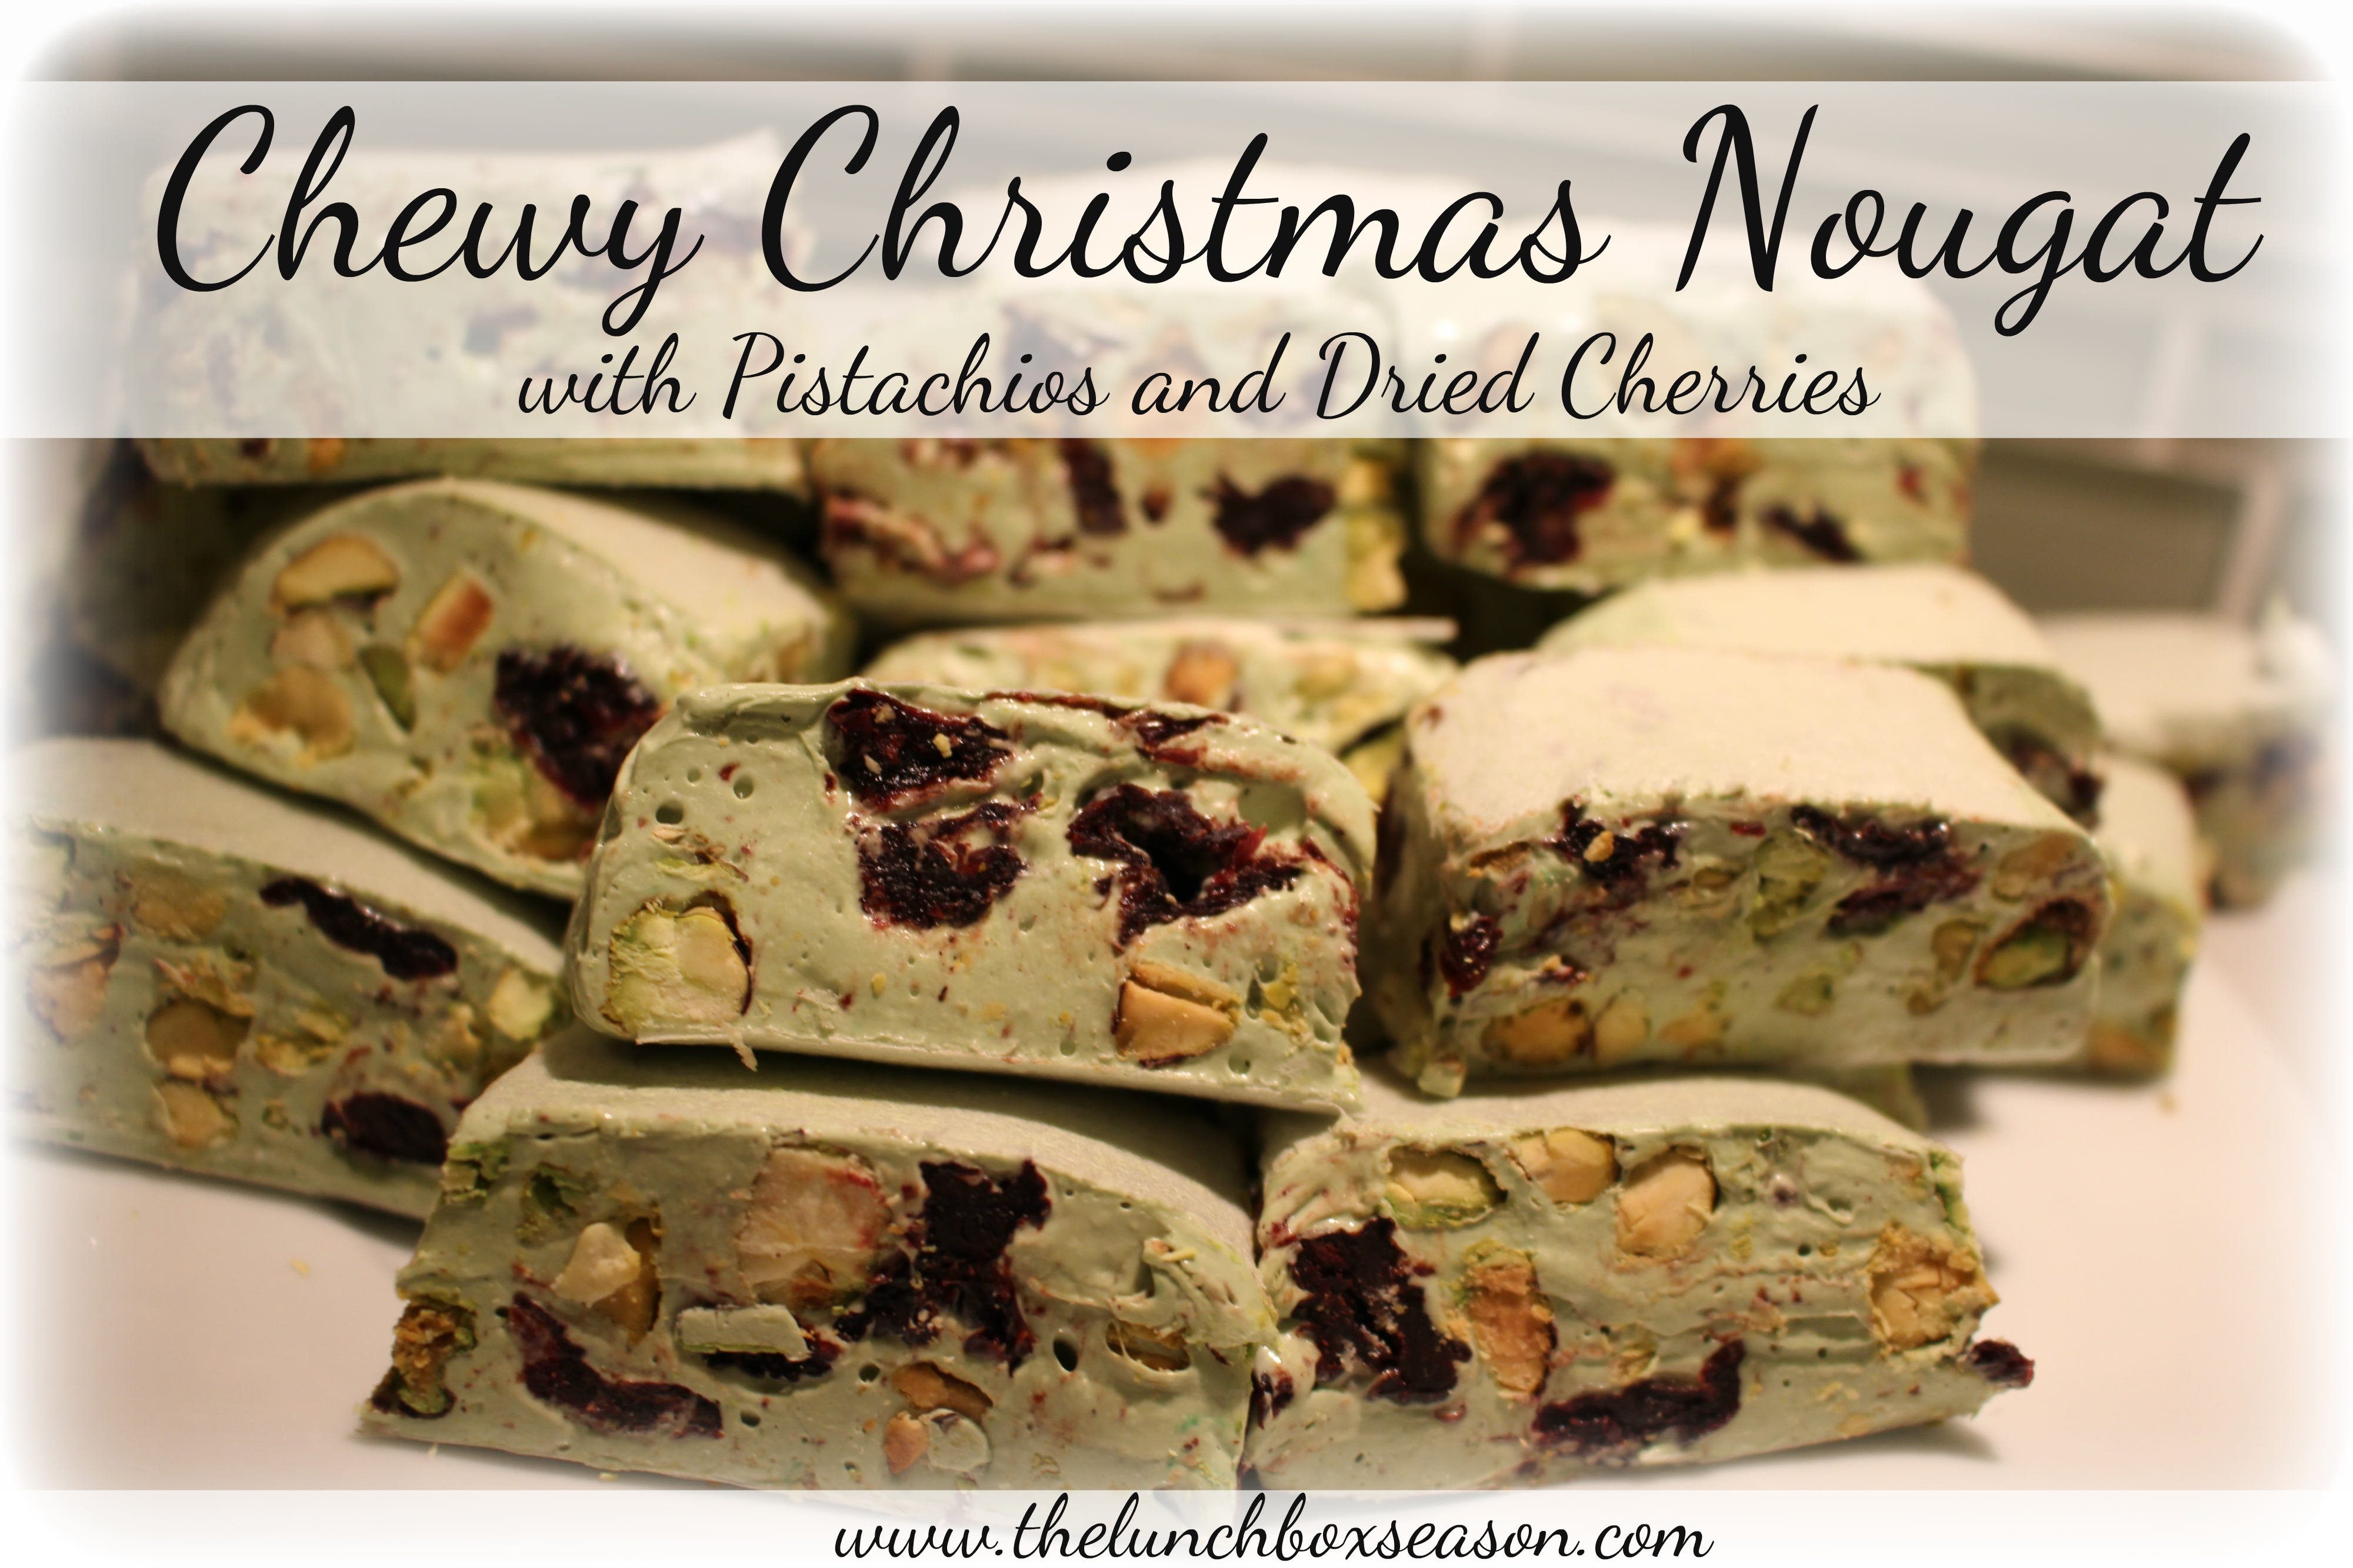 how to make soft chewy nougat